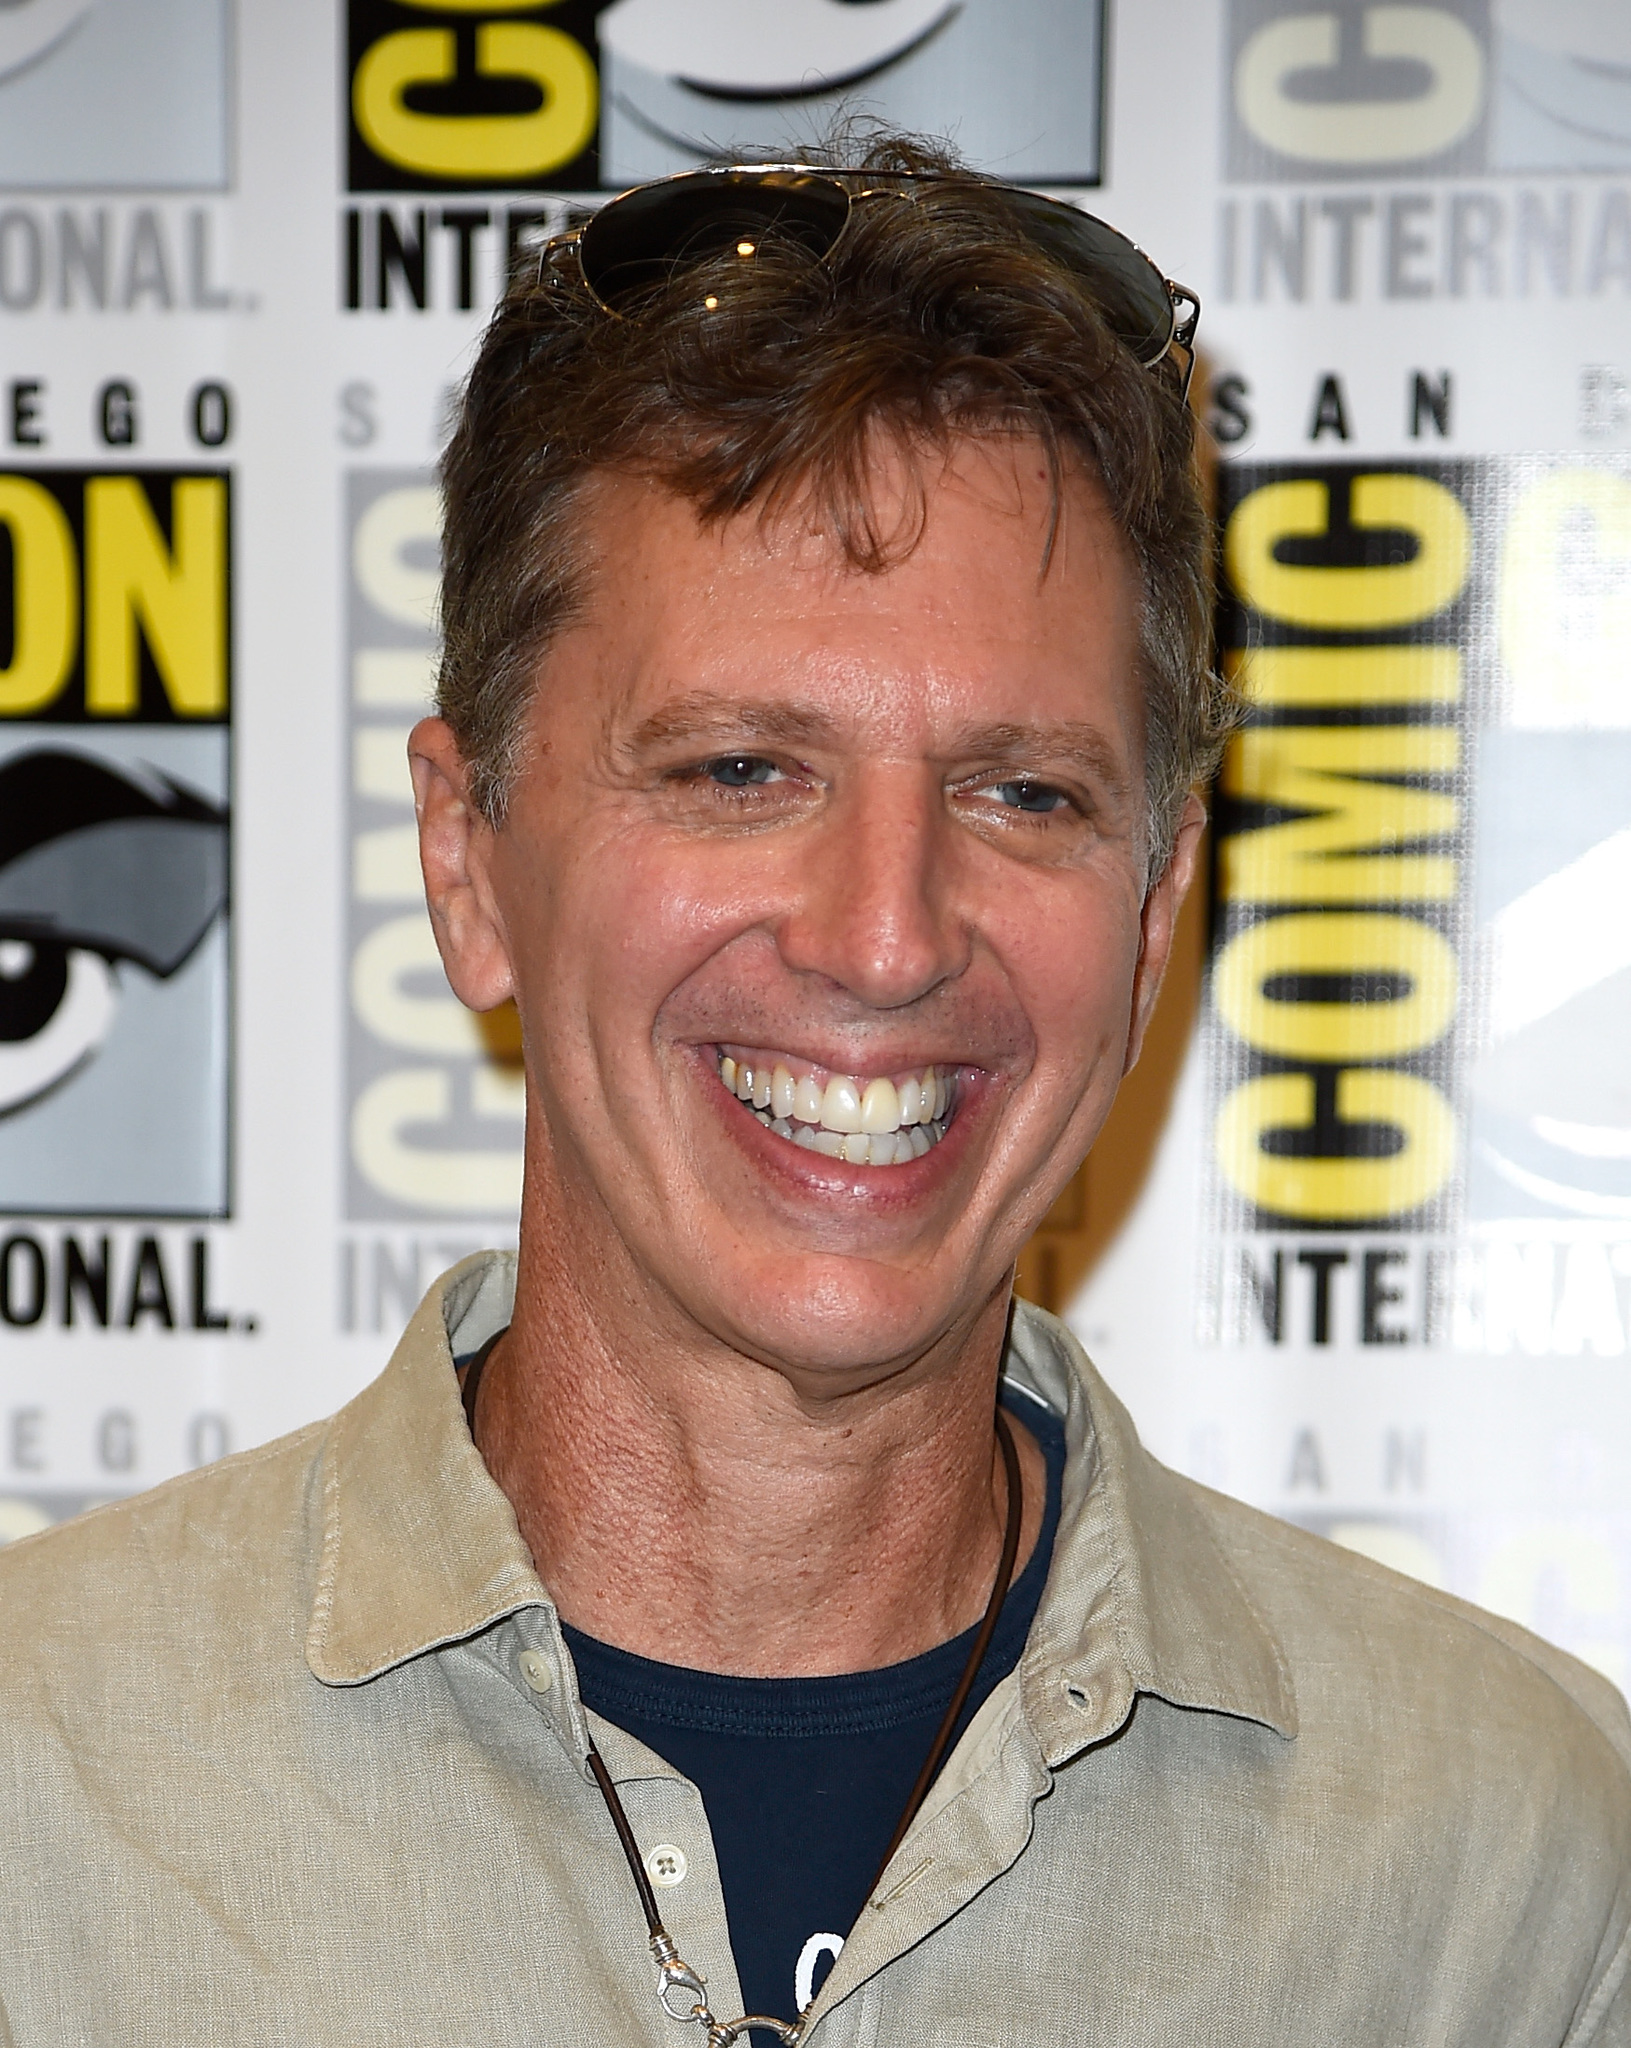 Tim Kring at an event for Dig (2015)